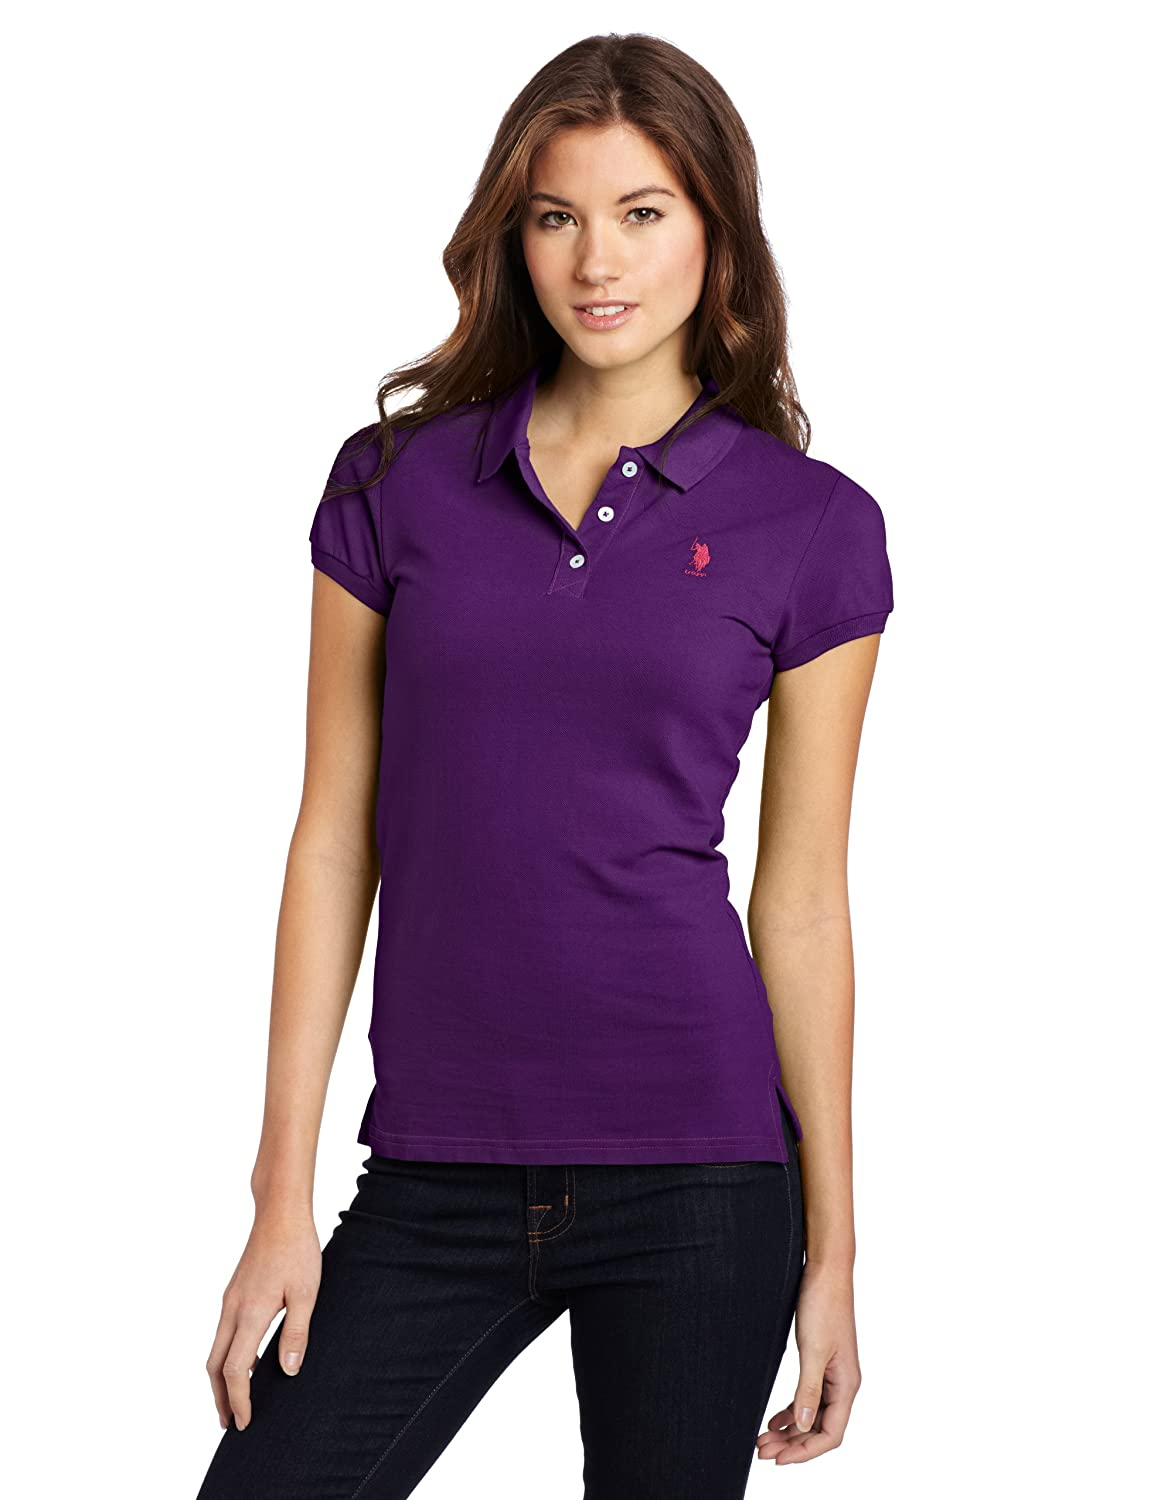 US Polo Assn. Juniors Solid Polo With Small Pony $12.99